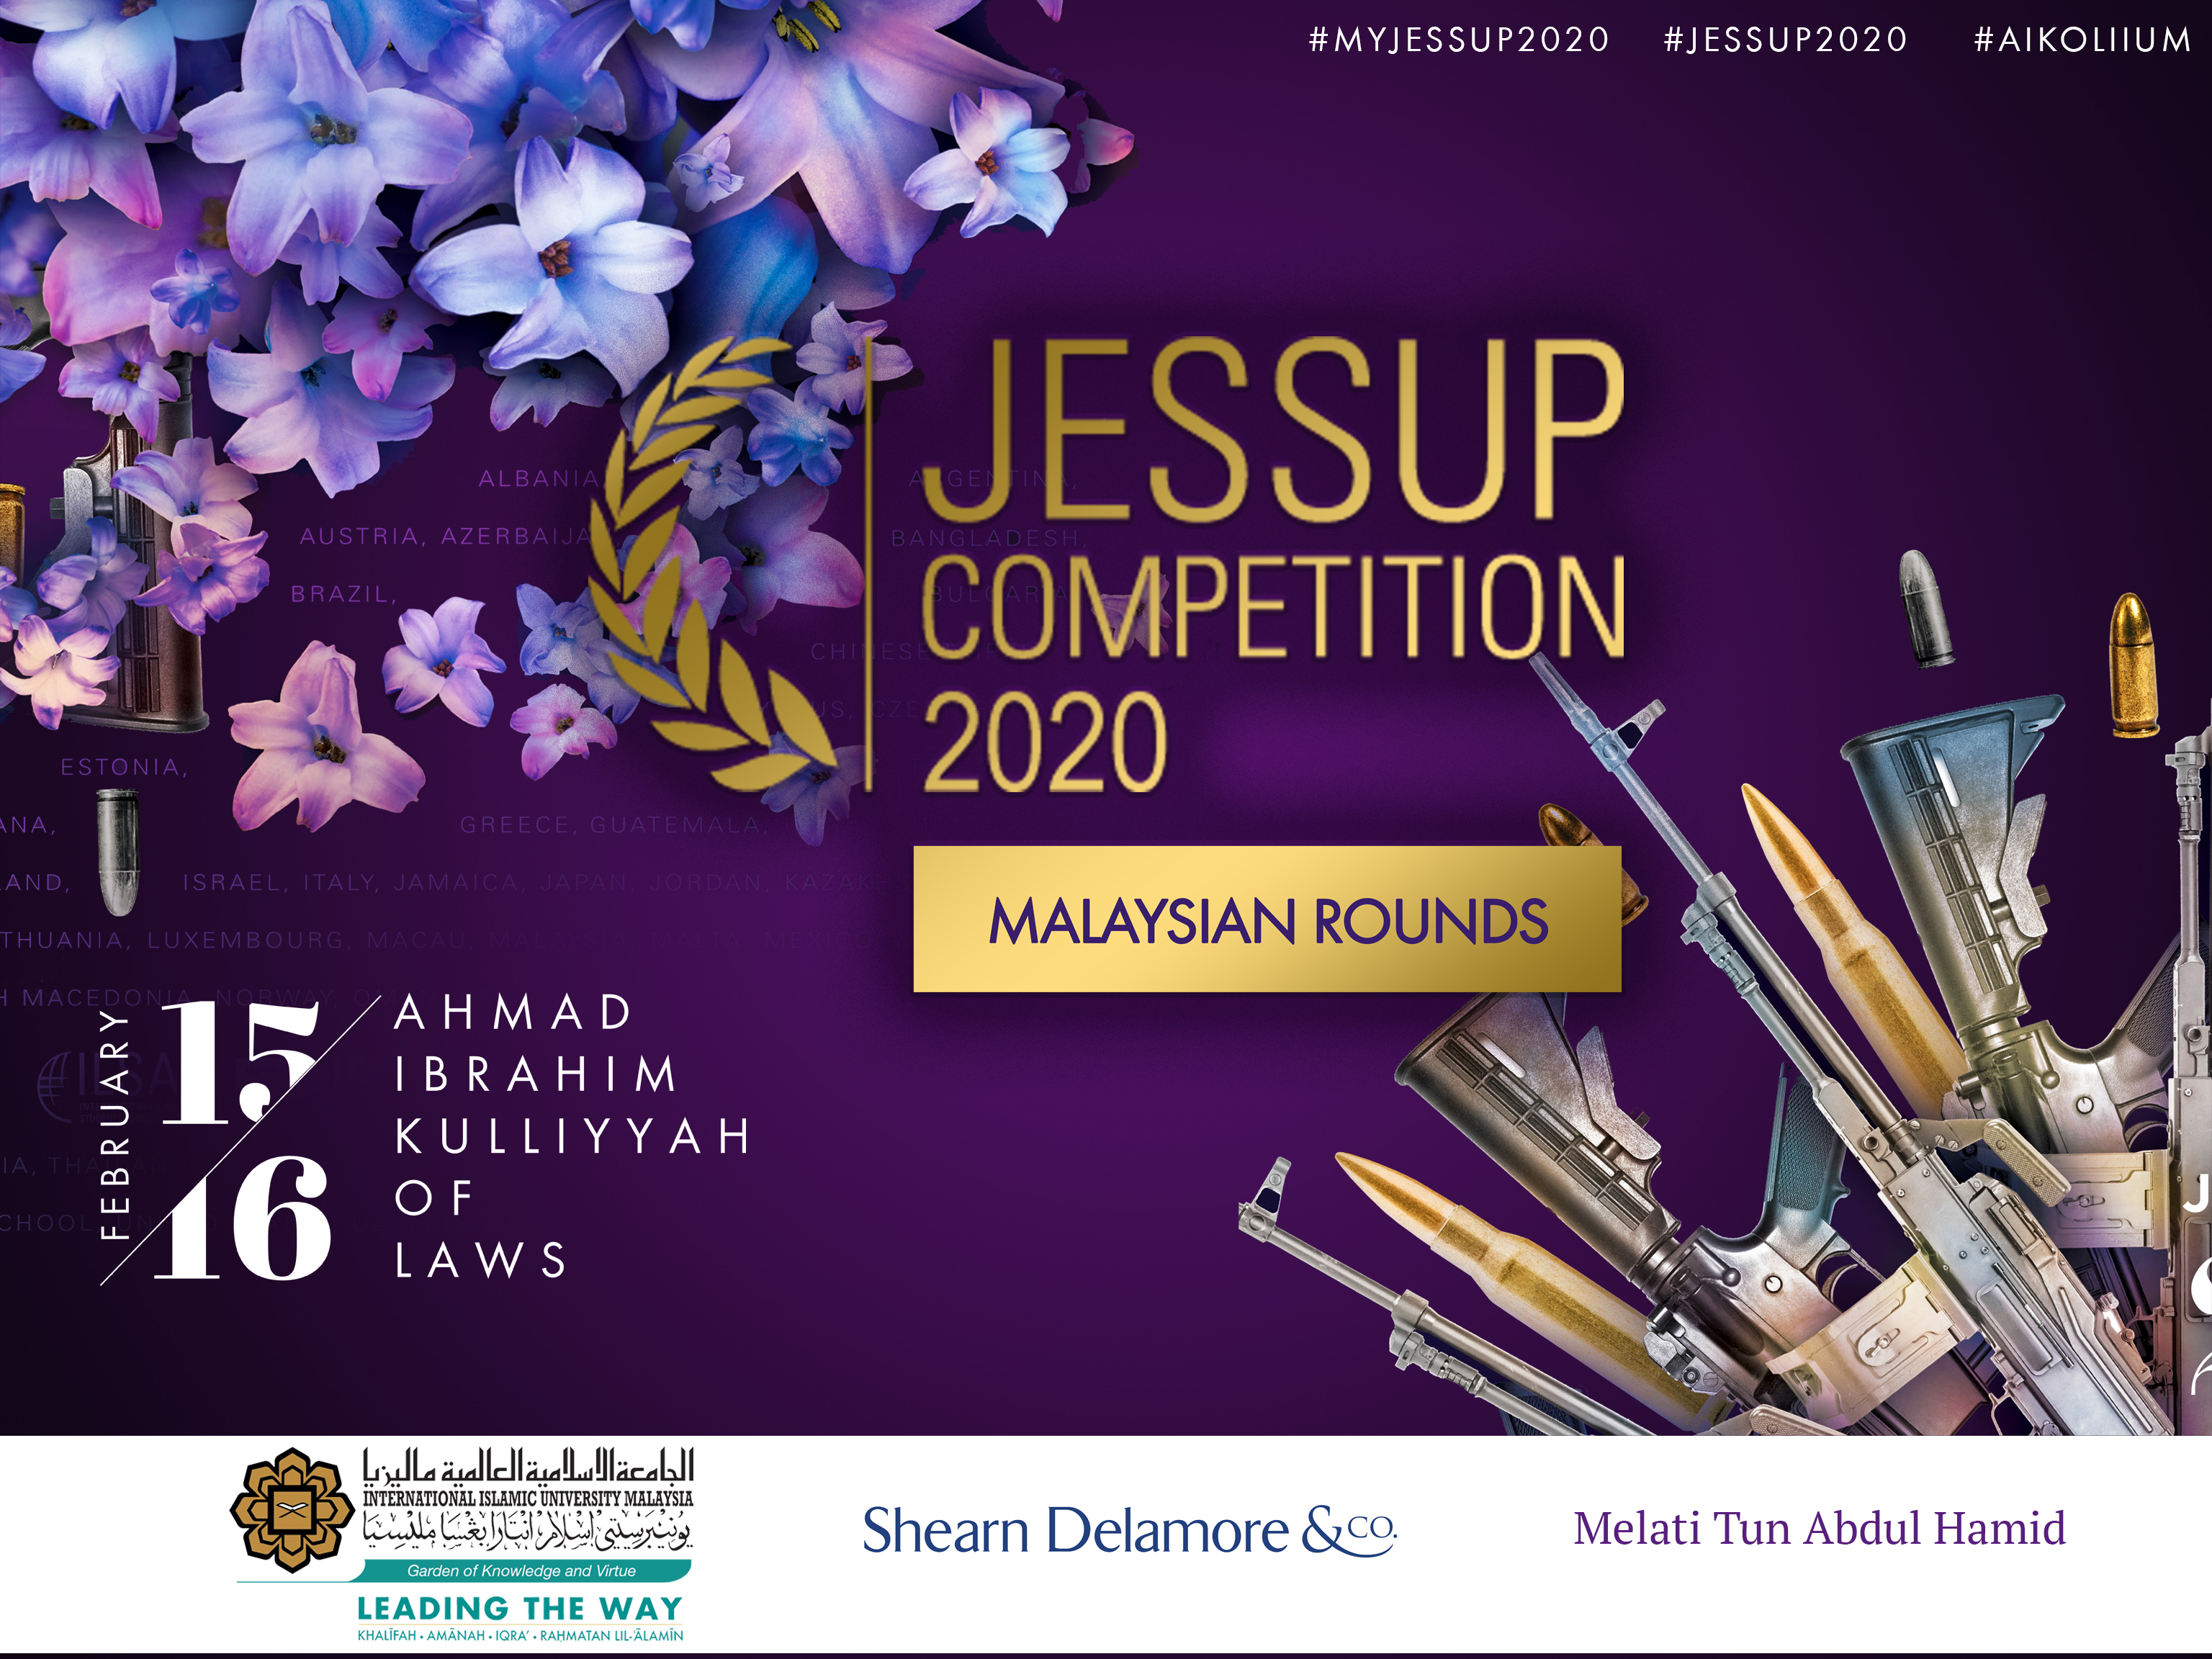 THE PHILIP C. JESSUP INTERNATIONAL LAW MOOT COURT COMPETITION 2020 (MALAYSIAN NATIONAL ROUNDS)